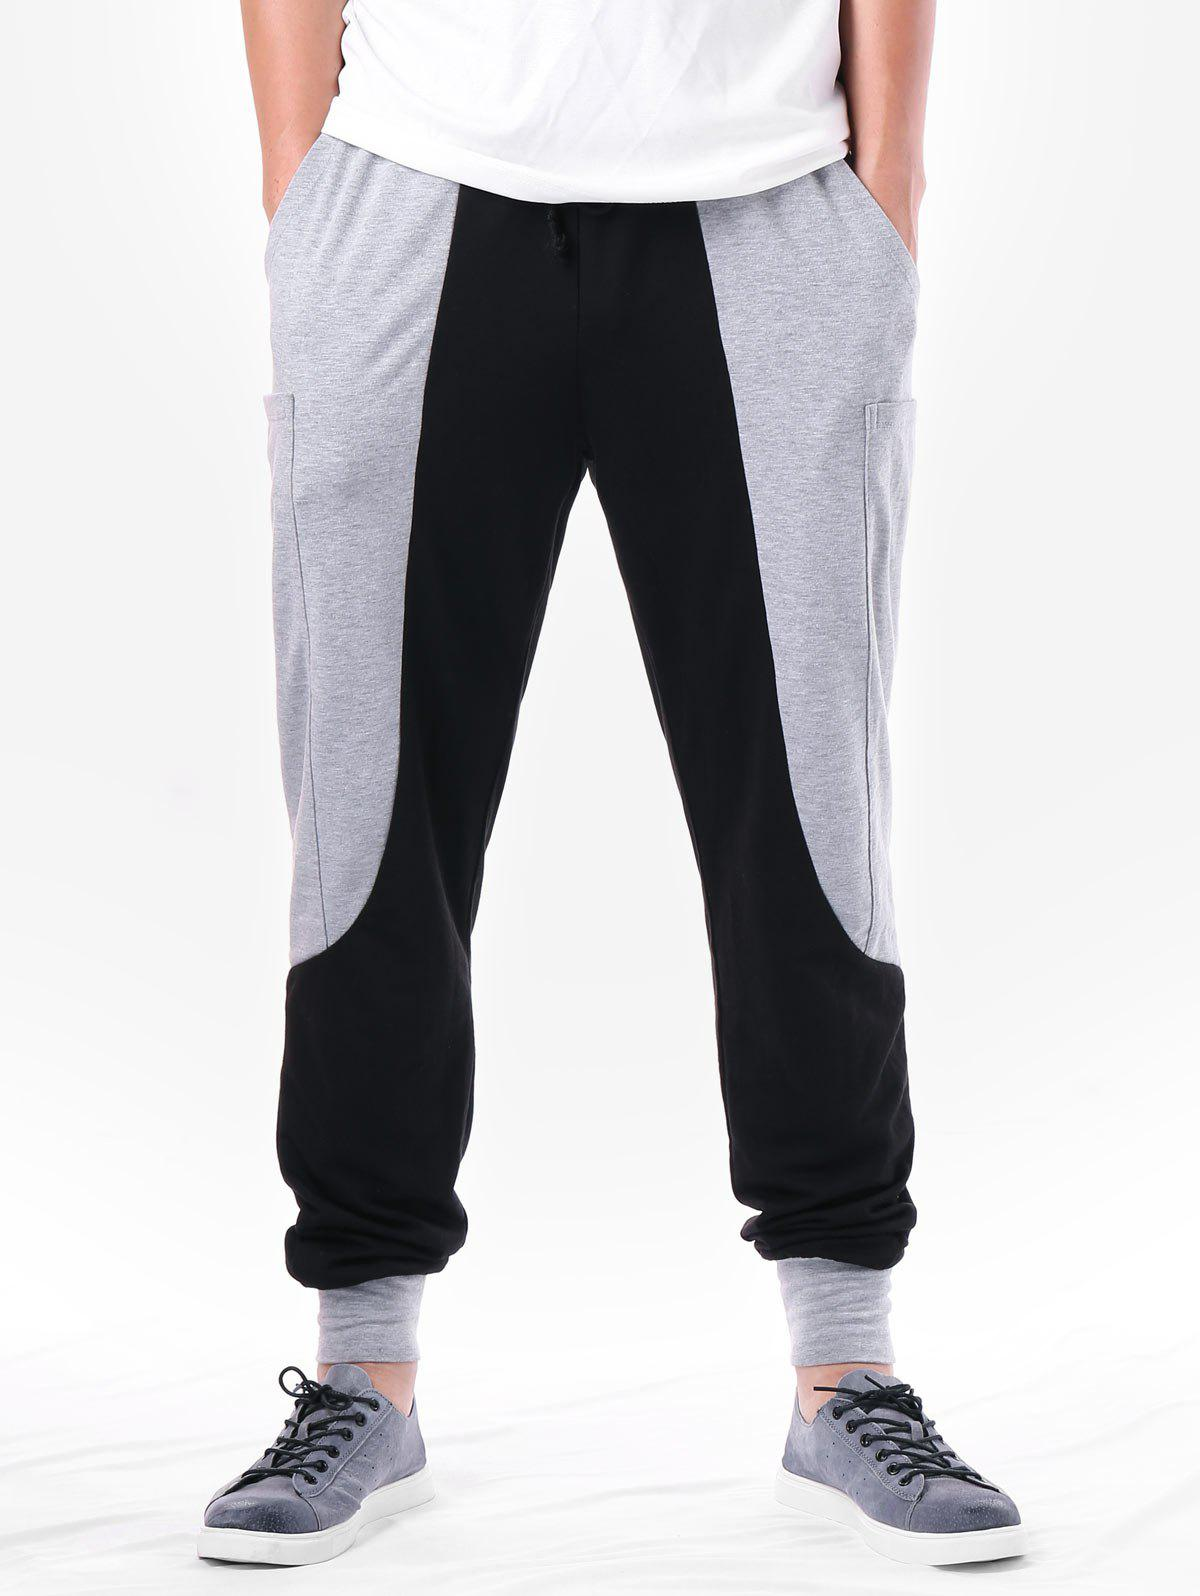 Shop Two Tone Pocket Design Narrow Feet Pants